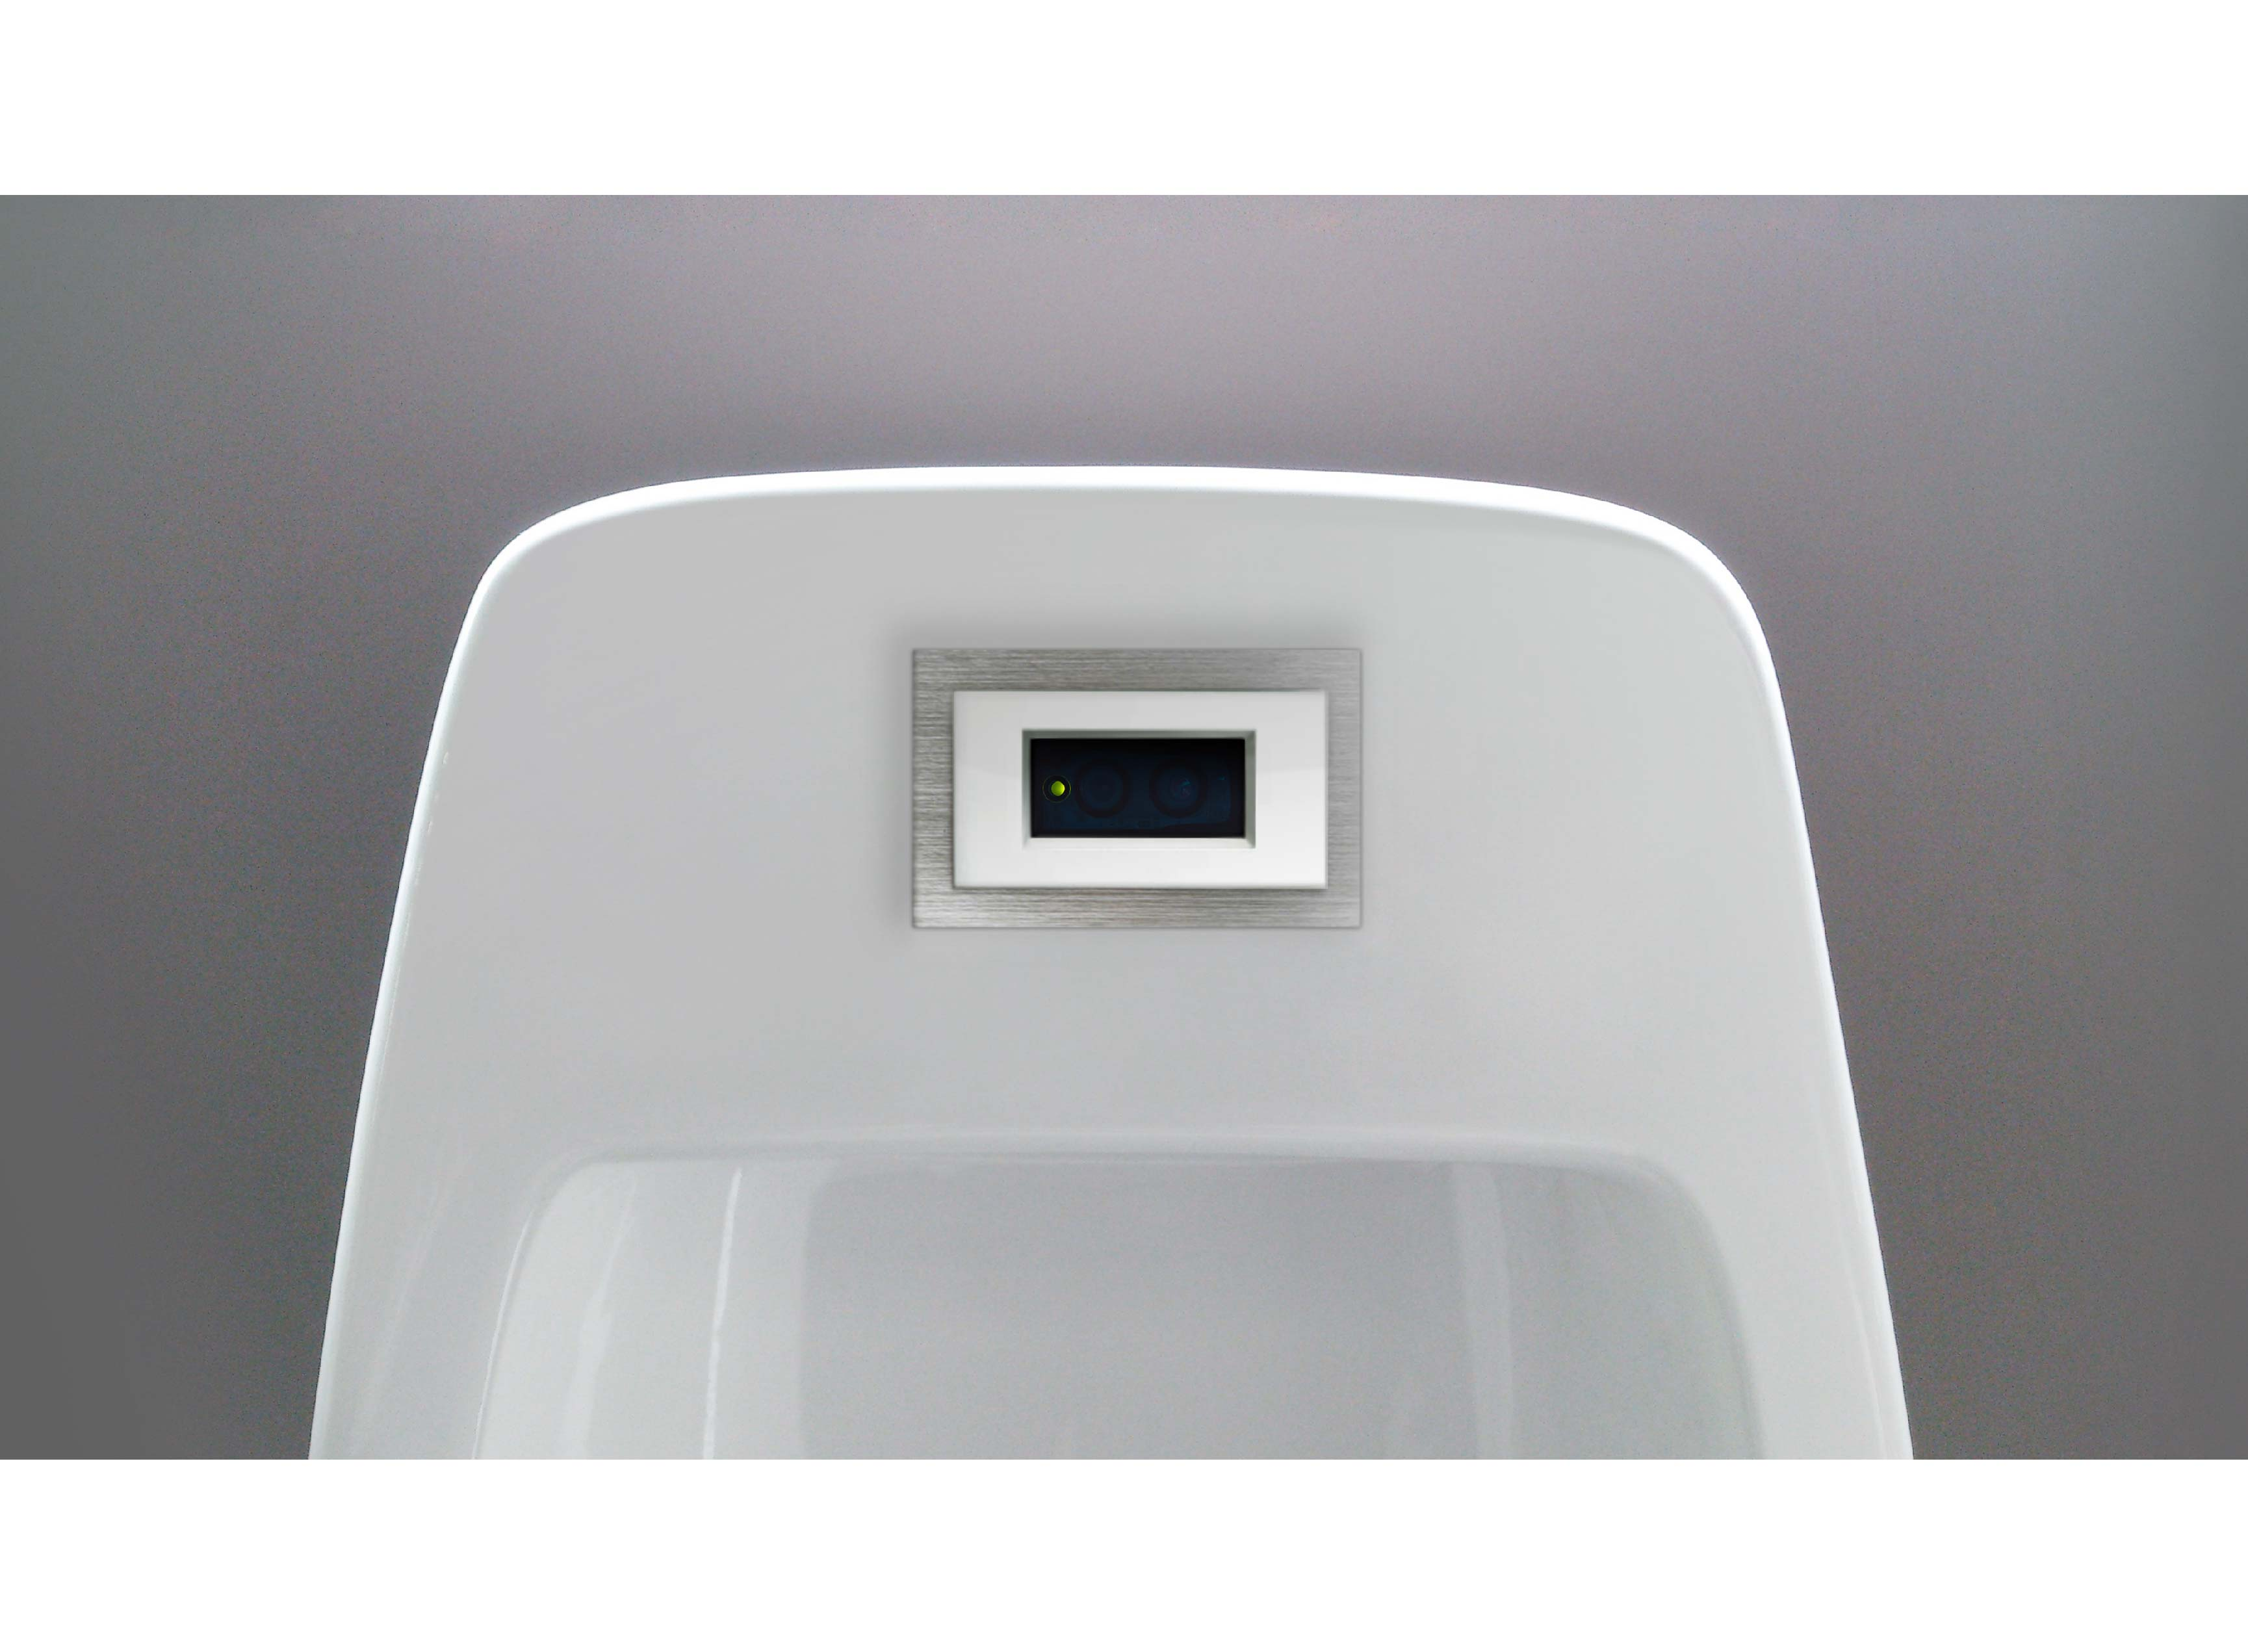 Integrative Automatic Urinal Flusher L-362